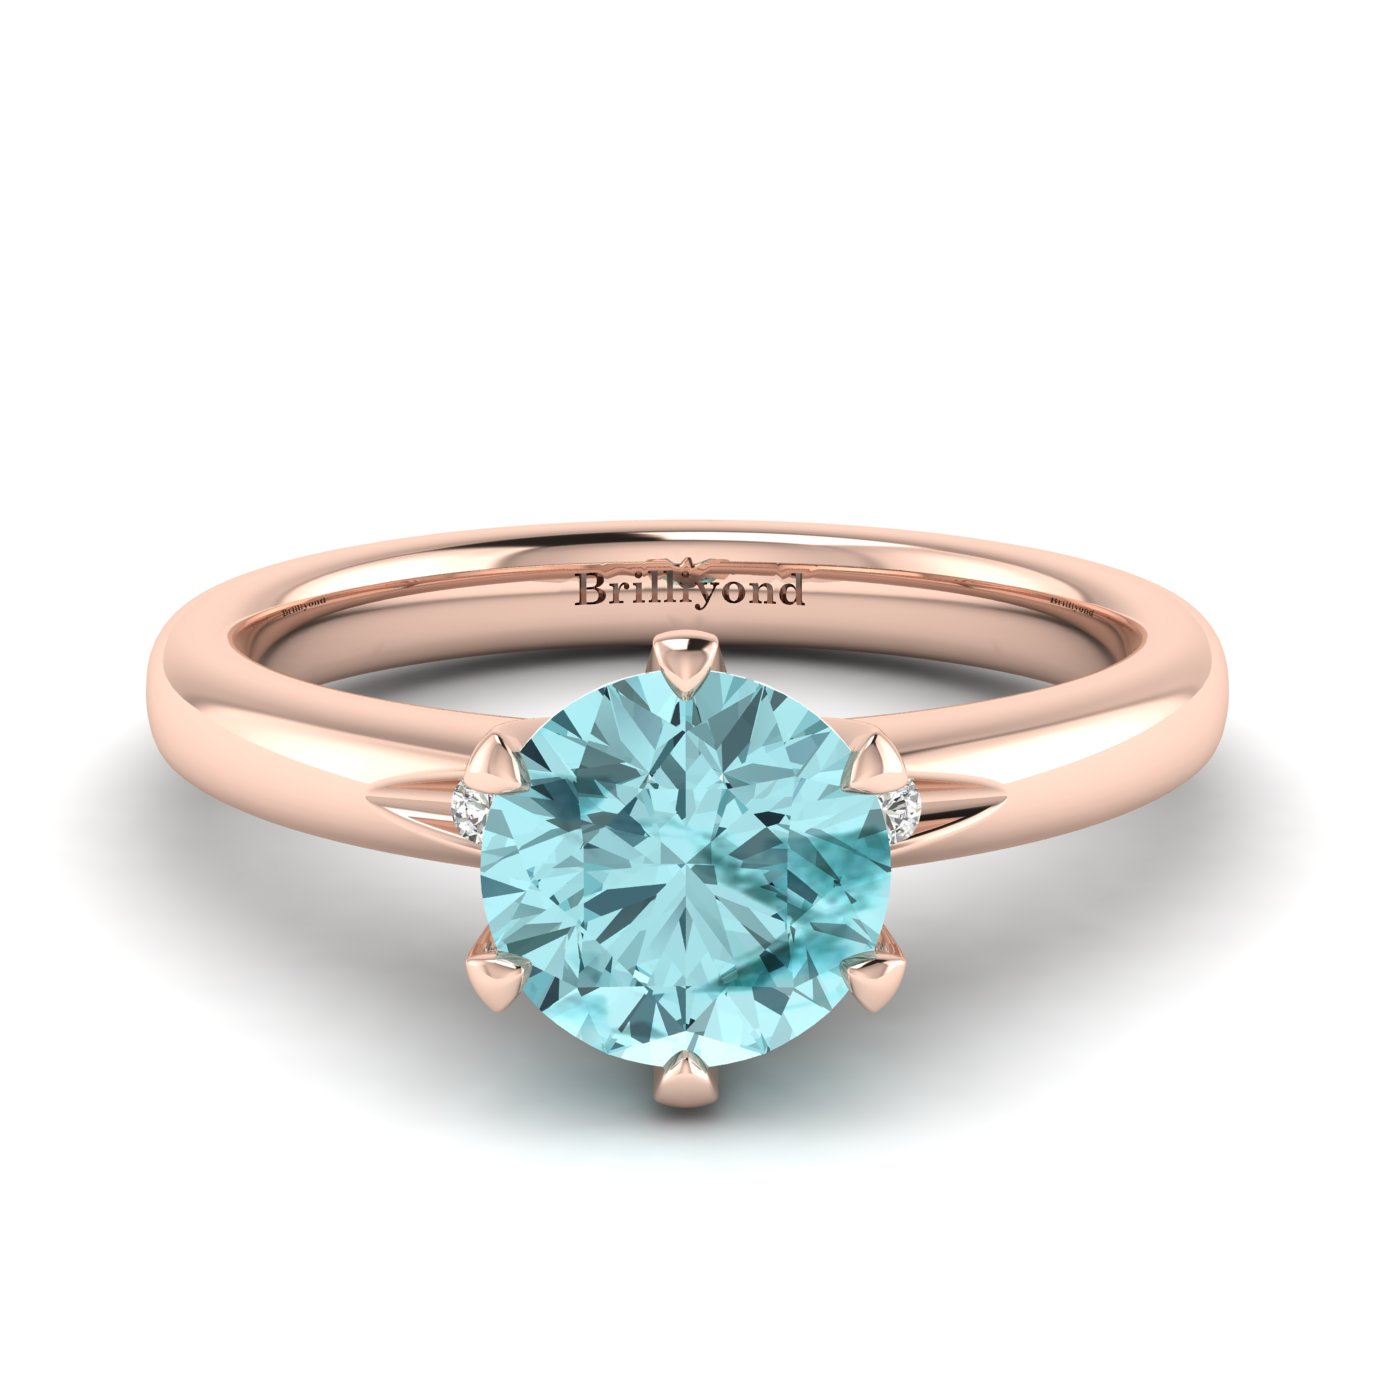 Aquamarine Rose Gold Solitaire Engagement Ring Byond_image2